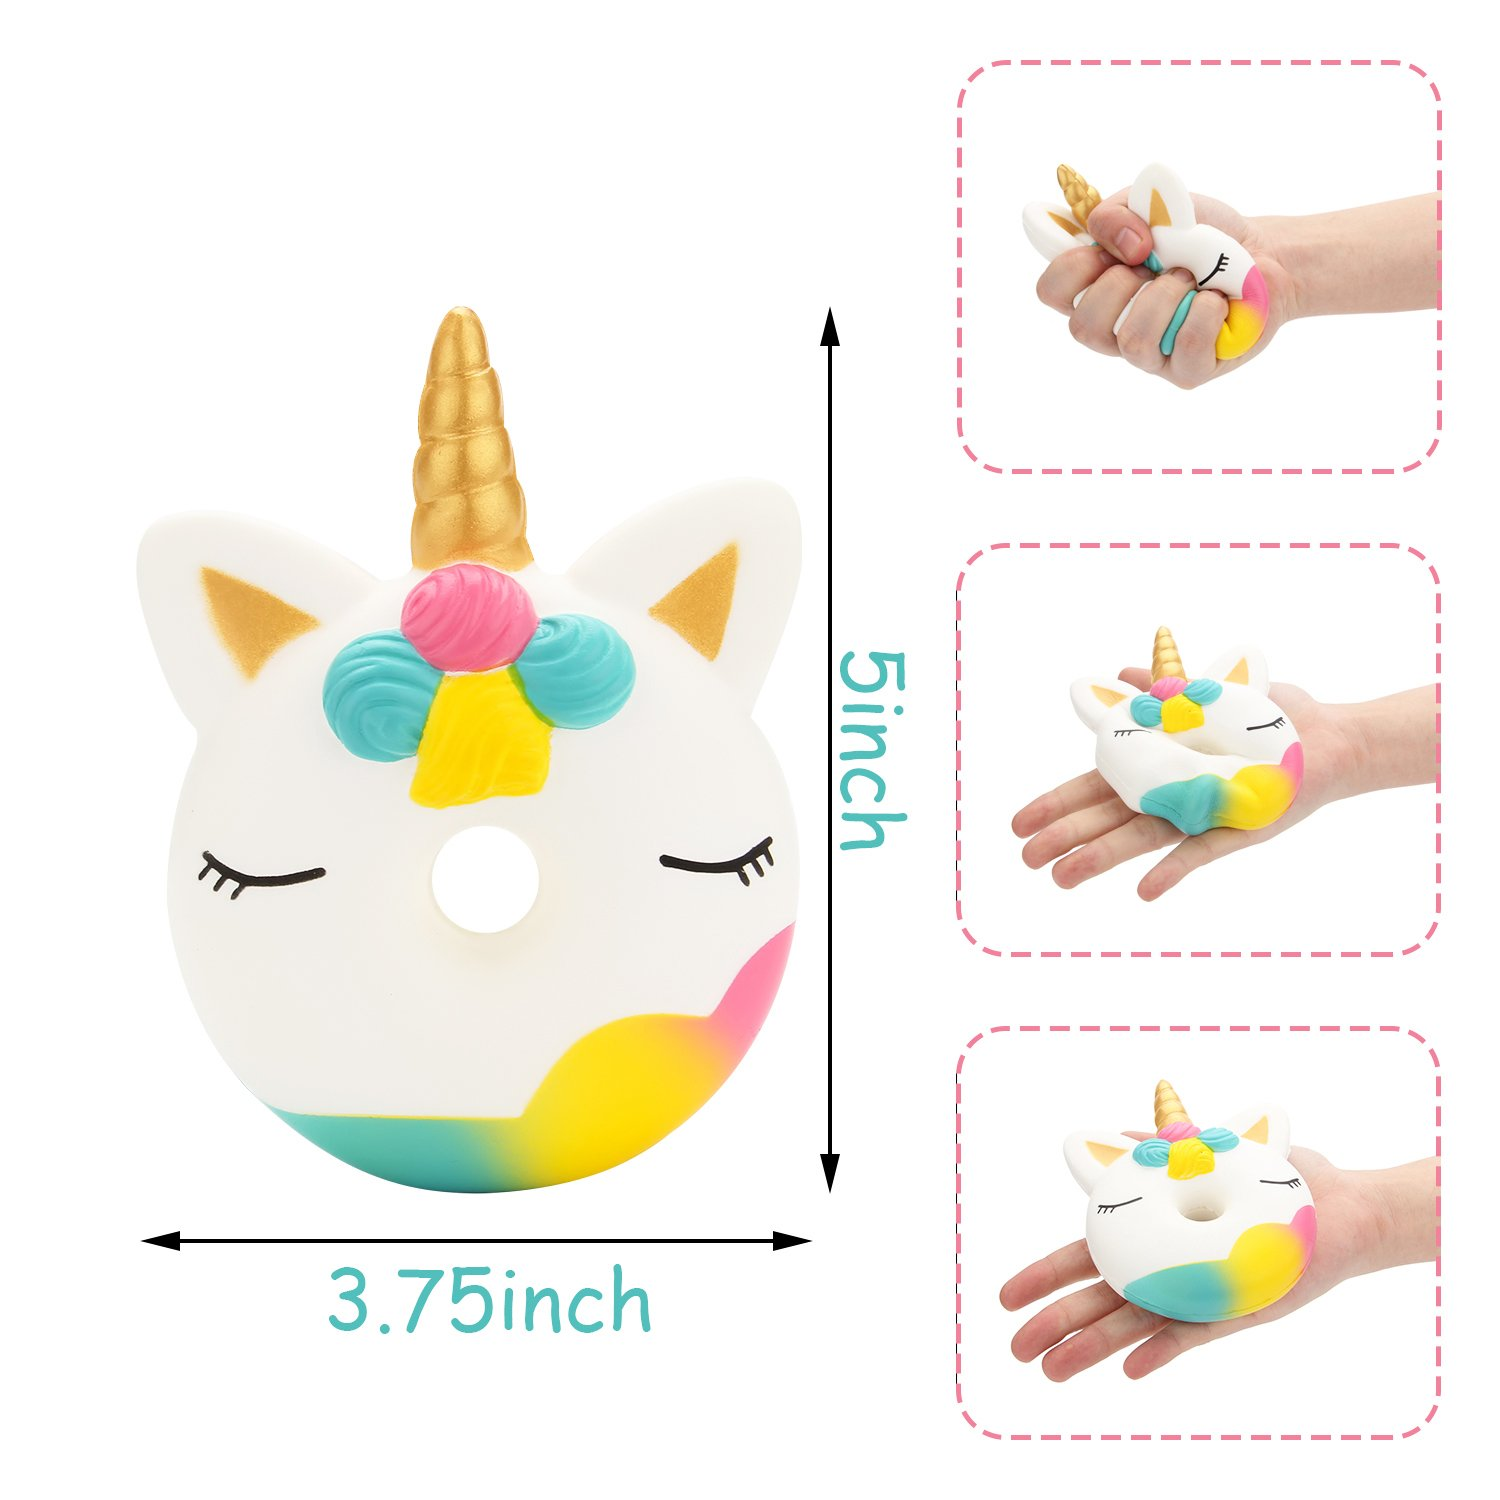 R.HORSE Cute Unicorn Cake, Narwhal Cake, Unicorn Donut Set Kawaii Cream Scented Squishies Slow Rising Decompression Squeeze Toys for Kids or Stress Relief Toy Large (3 Pack)